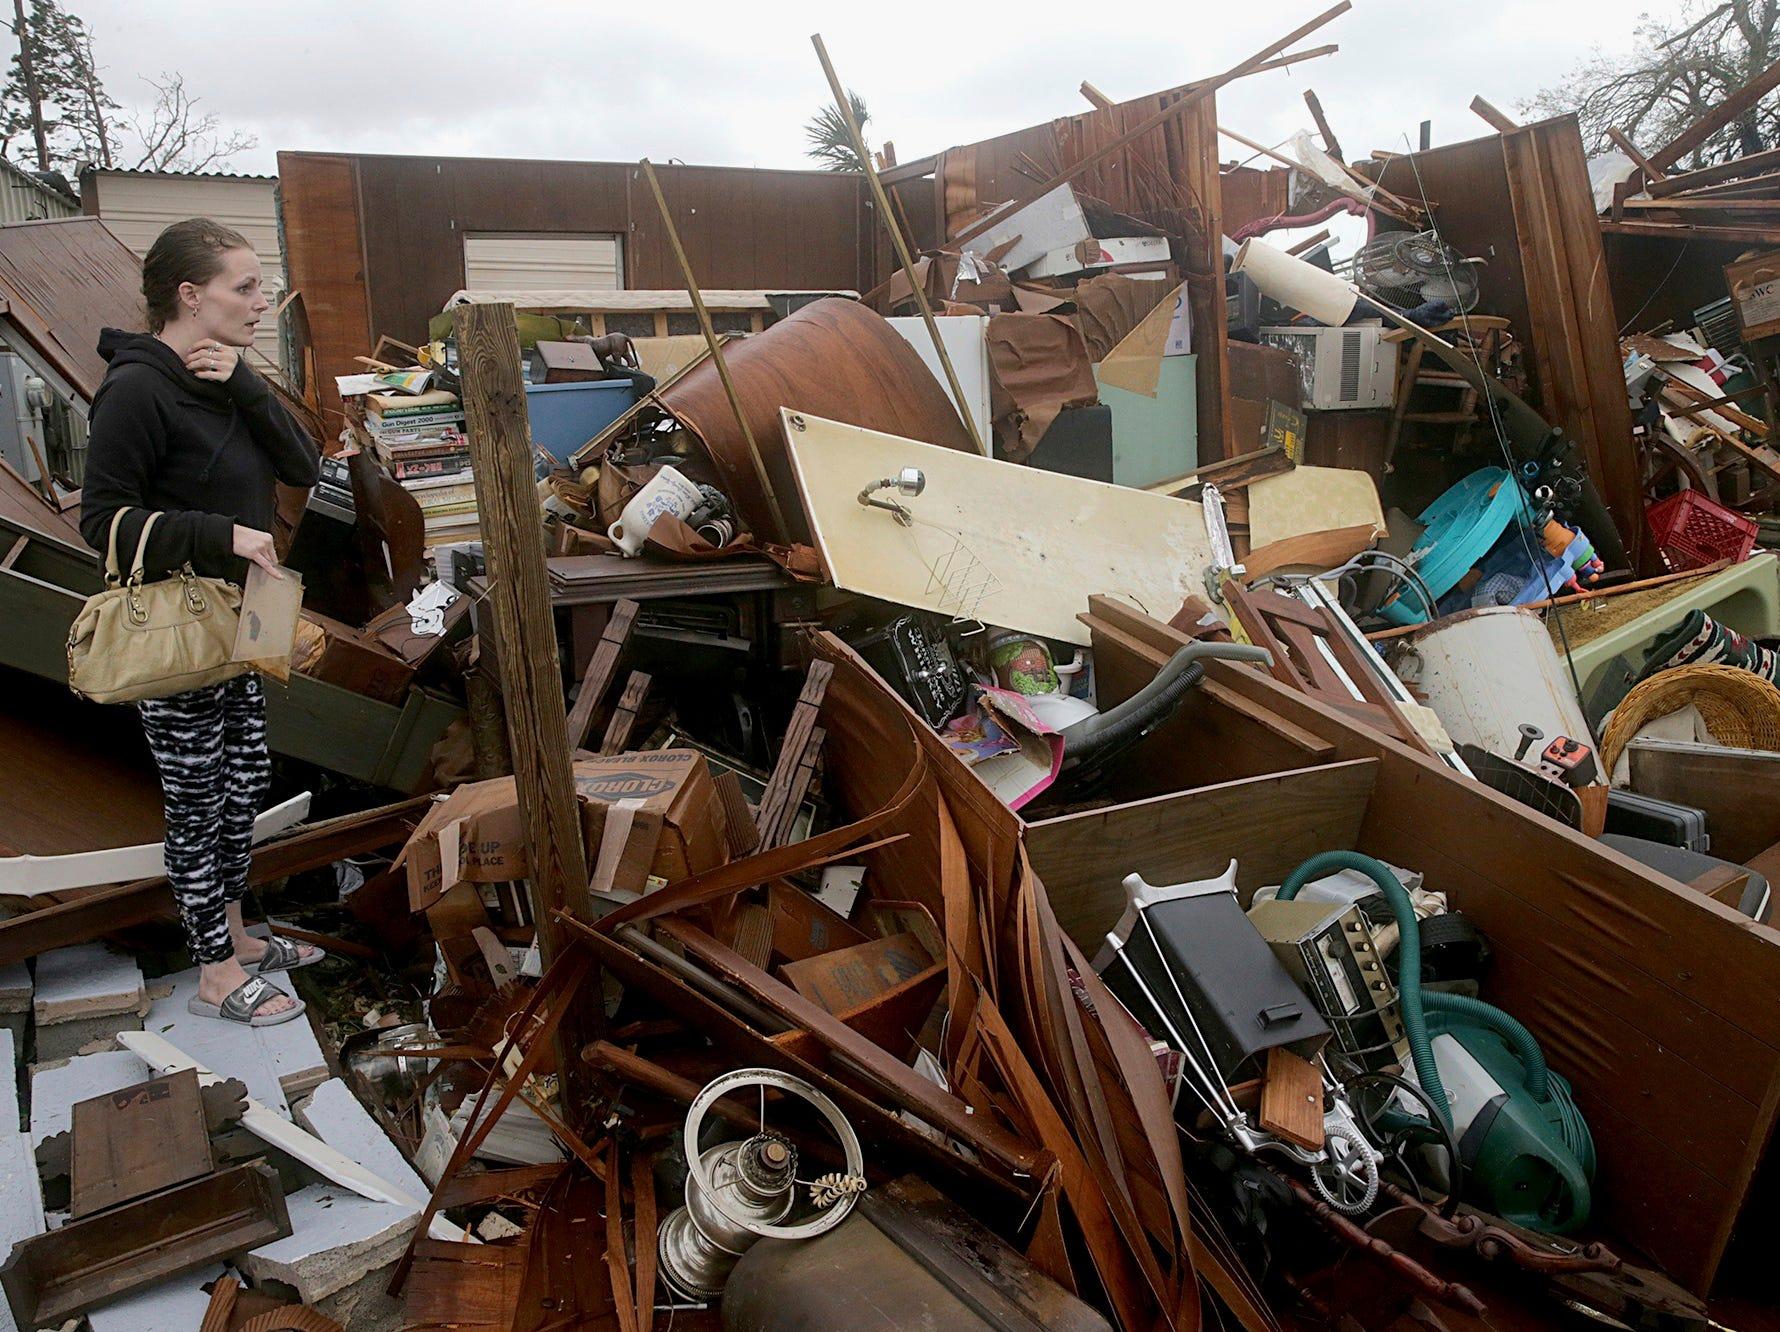 Haley Nelson inspects damages to her family properties in the Panama City, Fla., spring field area after Hurricane Michael made landfall in Florida's Panhandle on Wednesday, Oct. 10, 2018. Supercharged by abnormally warm waters in the Gulf of Mexico, Hurricane Michael slammed into the Florida Panhandle with terrifying winds of 155 mph Wednesday, splintering homes and submerging neighborhoods before continuing its march inland. (Pedro Portal/Miami Herald via AP)